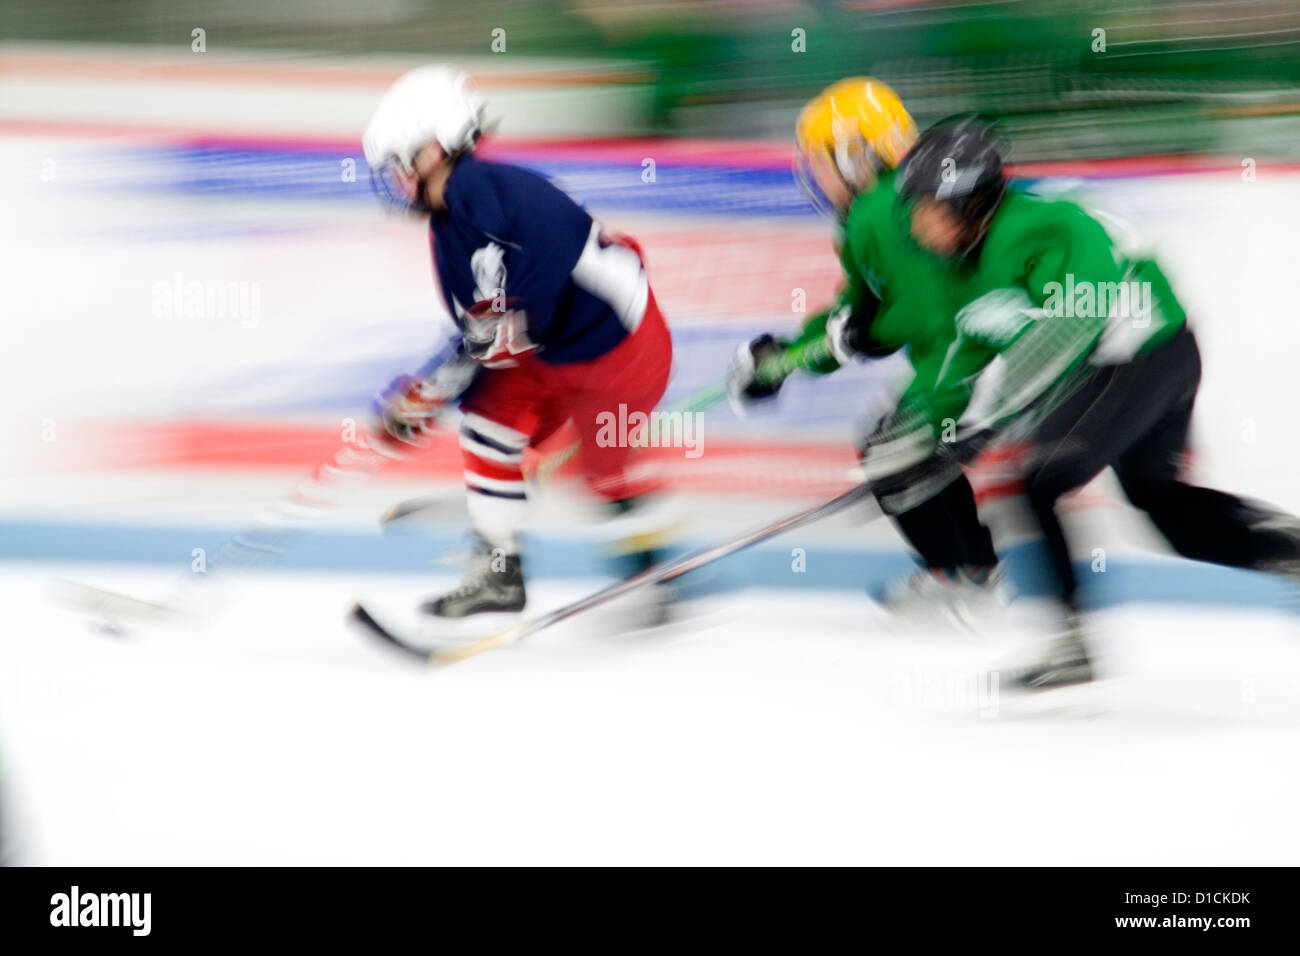 Blurred image of boys age 10 playing hockey. Braemar Hockey Arena Edina Minnesota MN USA - Stock Image